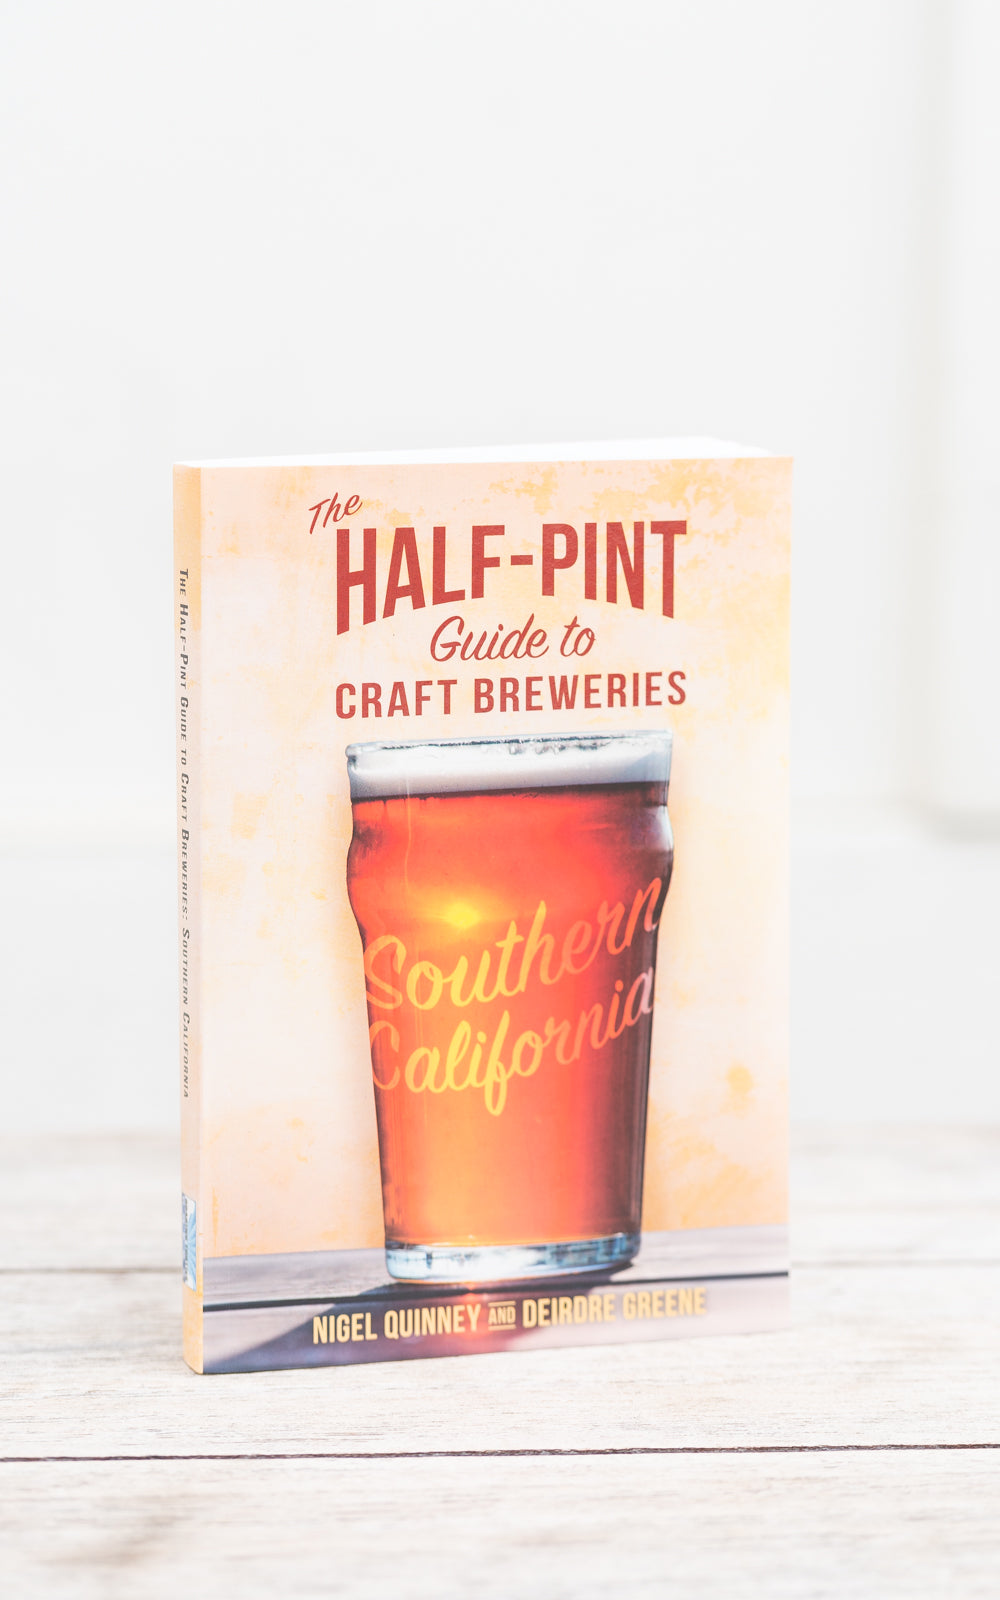 Ingram Publisher book about beer